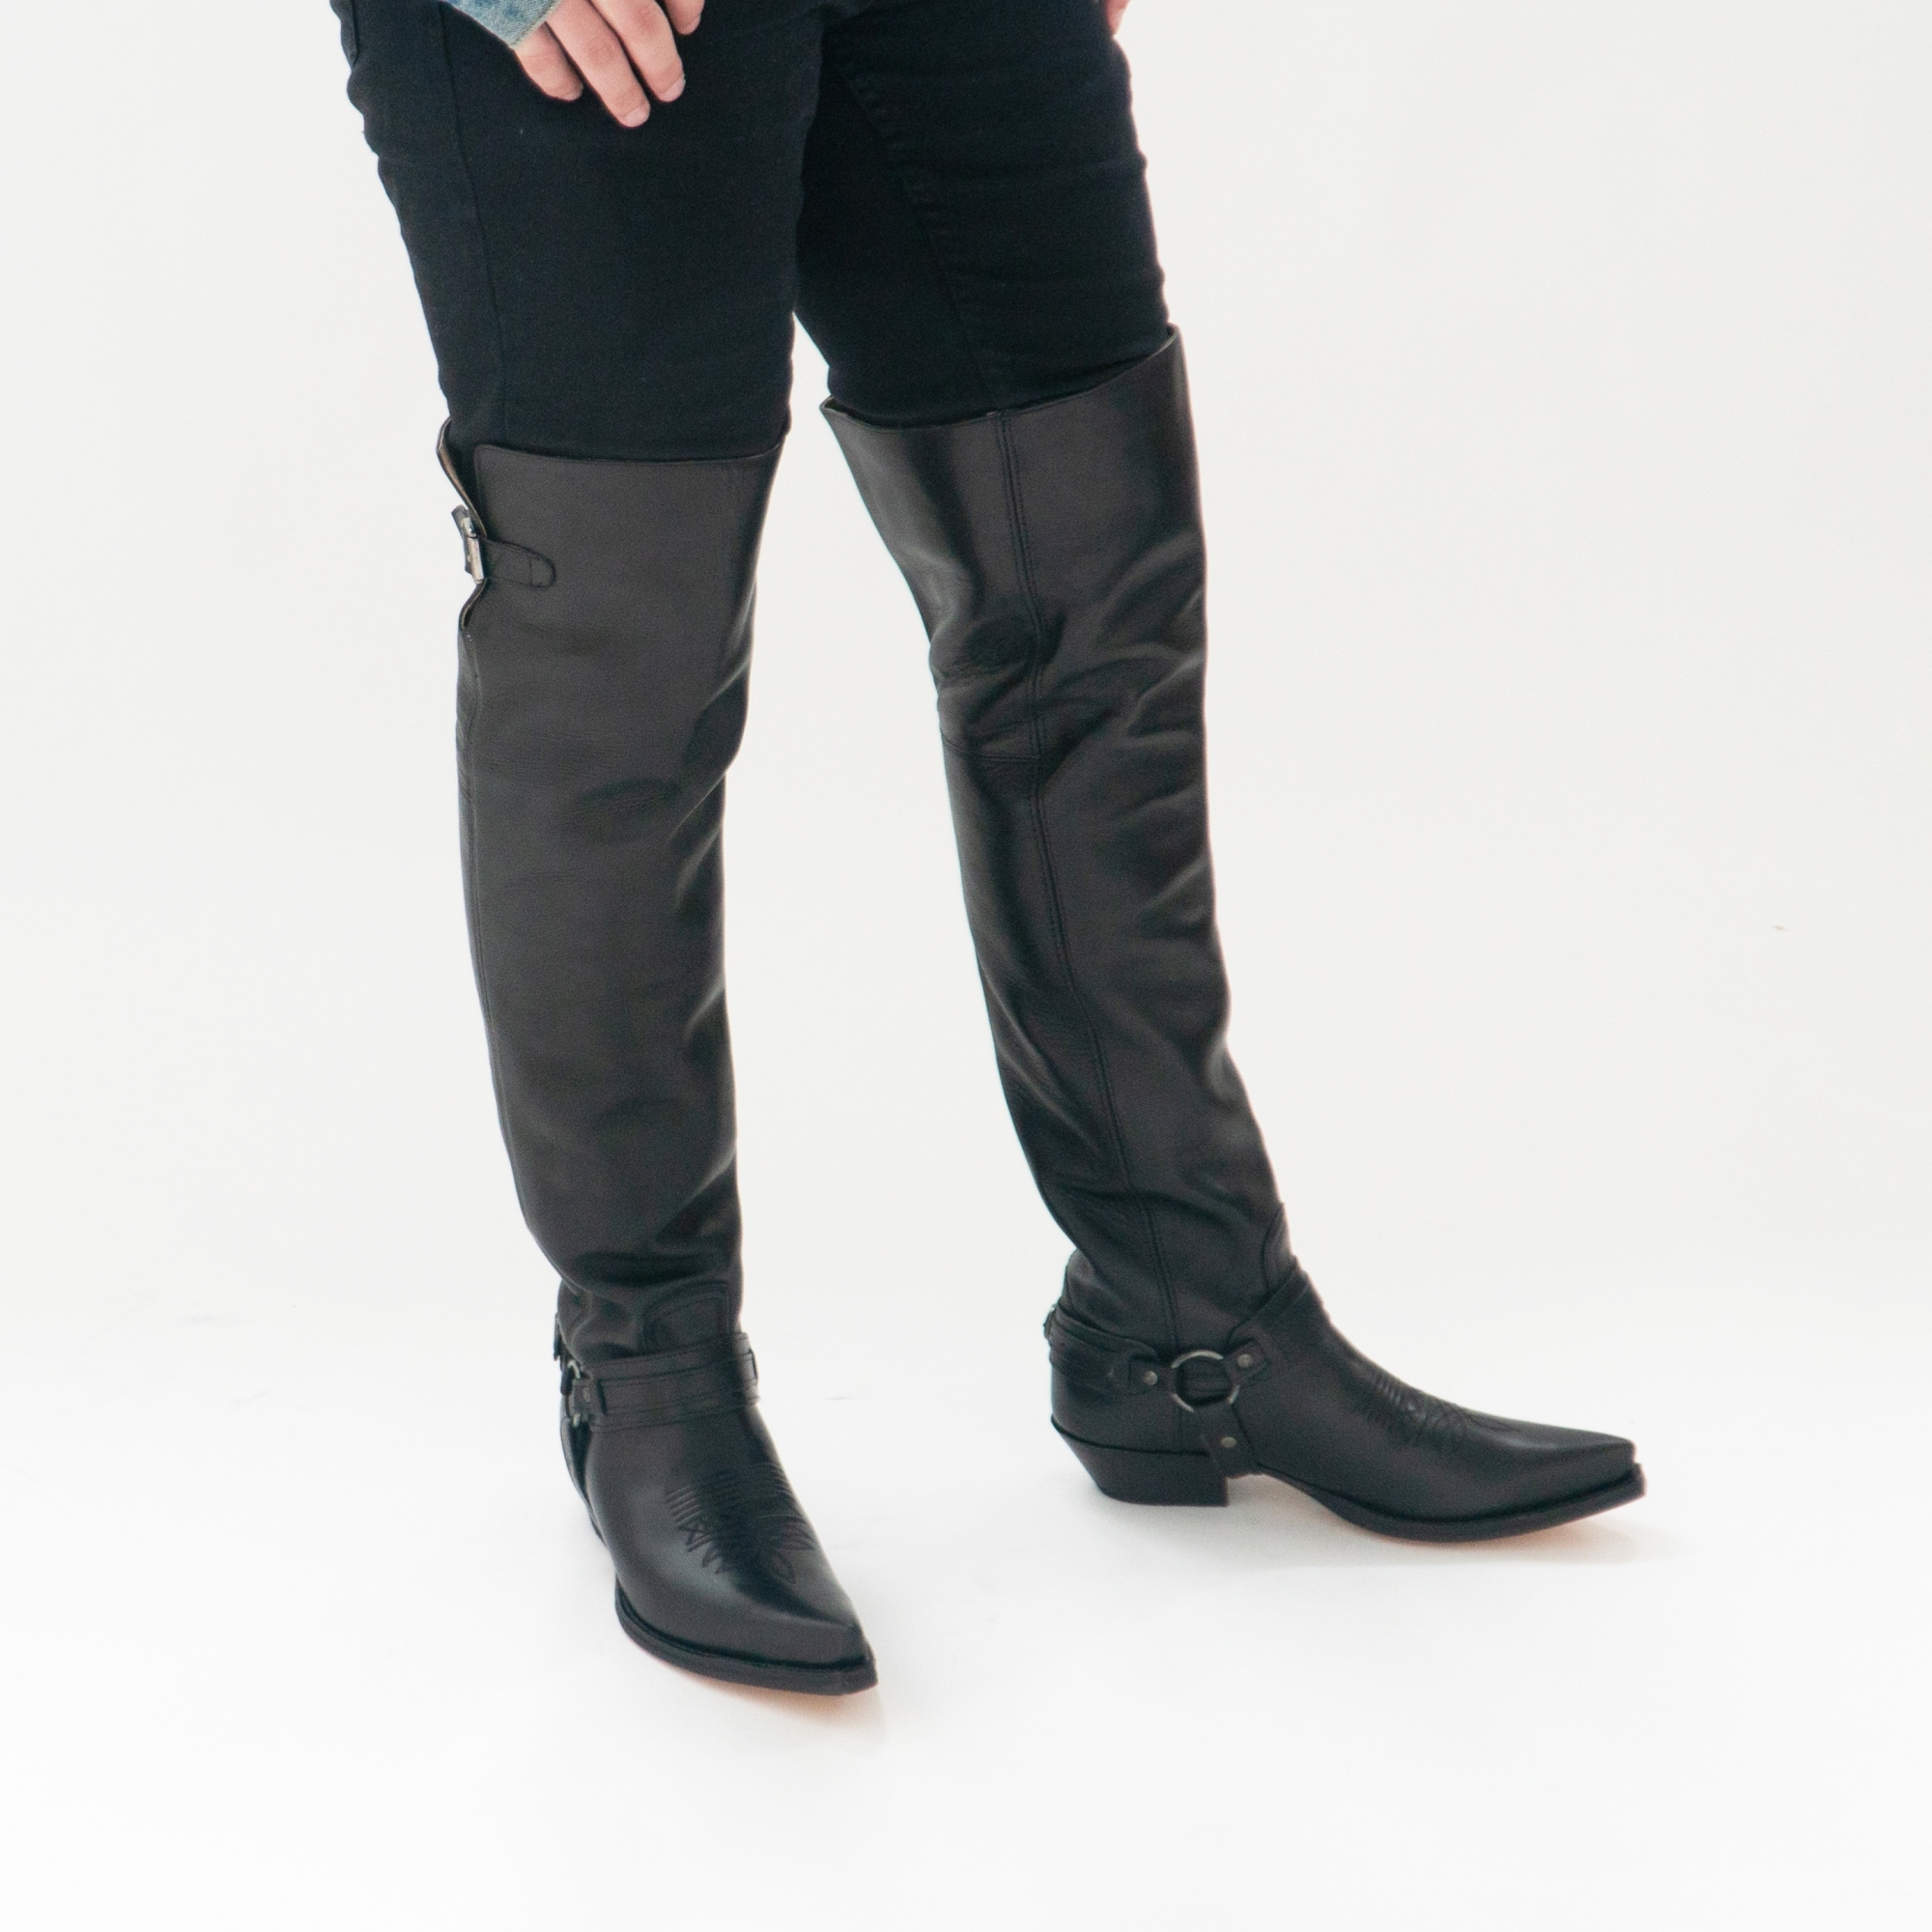 leather knee high boots for men